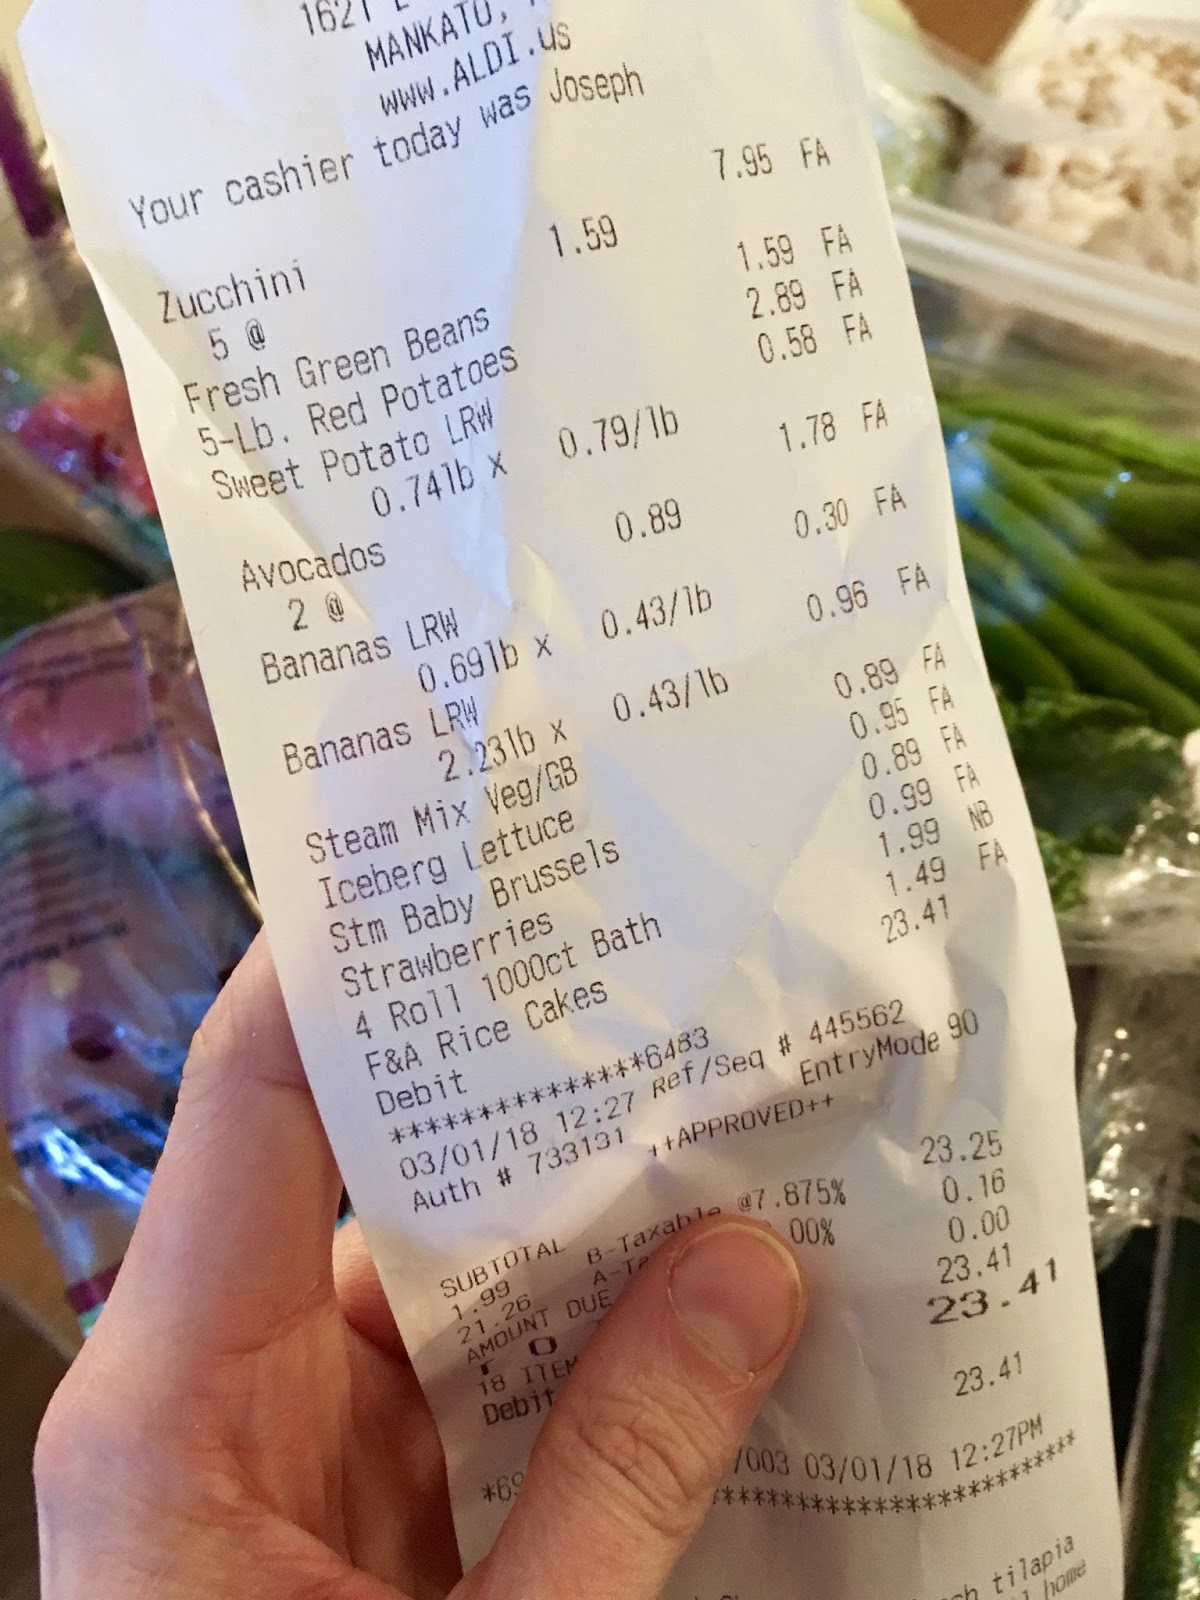 A Celiac's Guide to Shopping Gluten Free, Healthy and Cheap